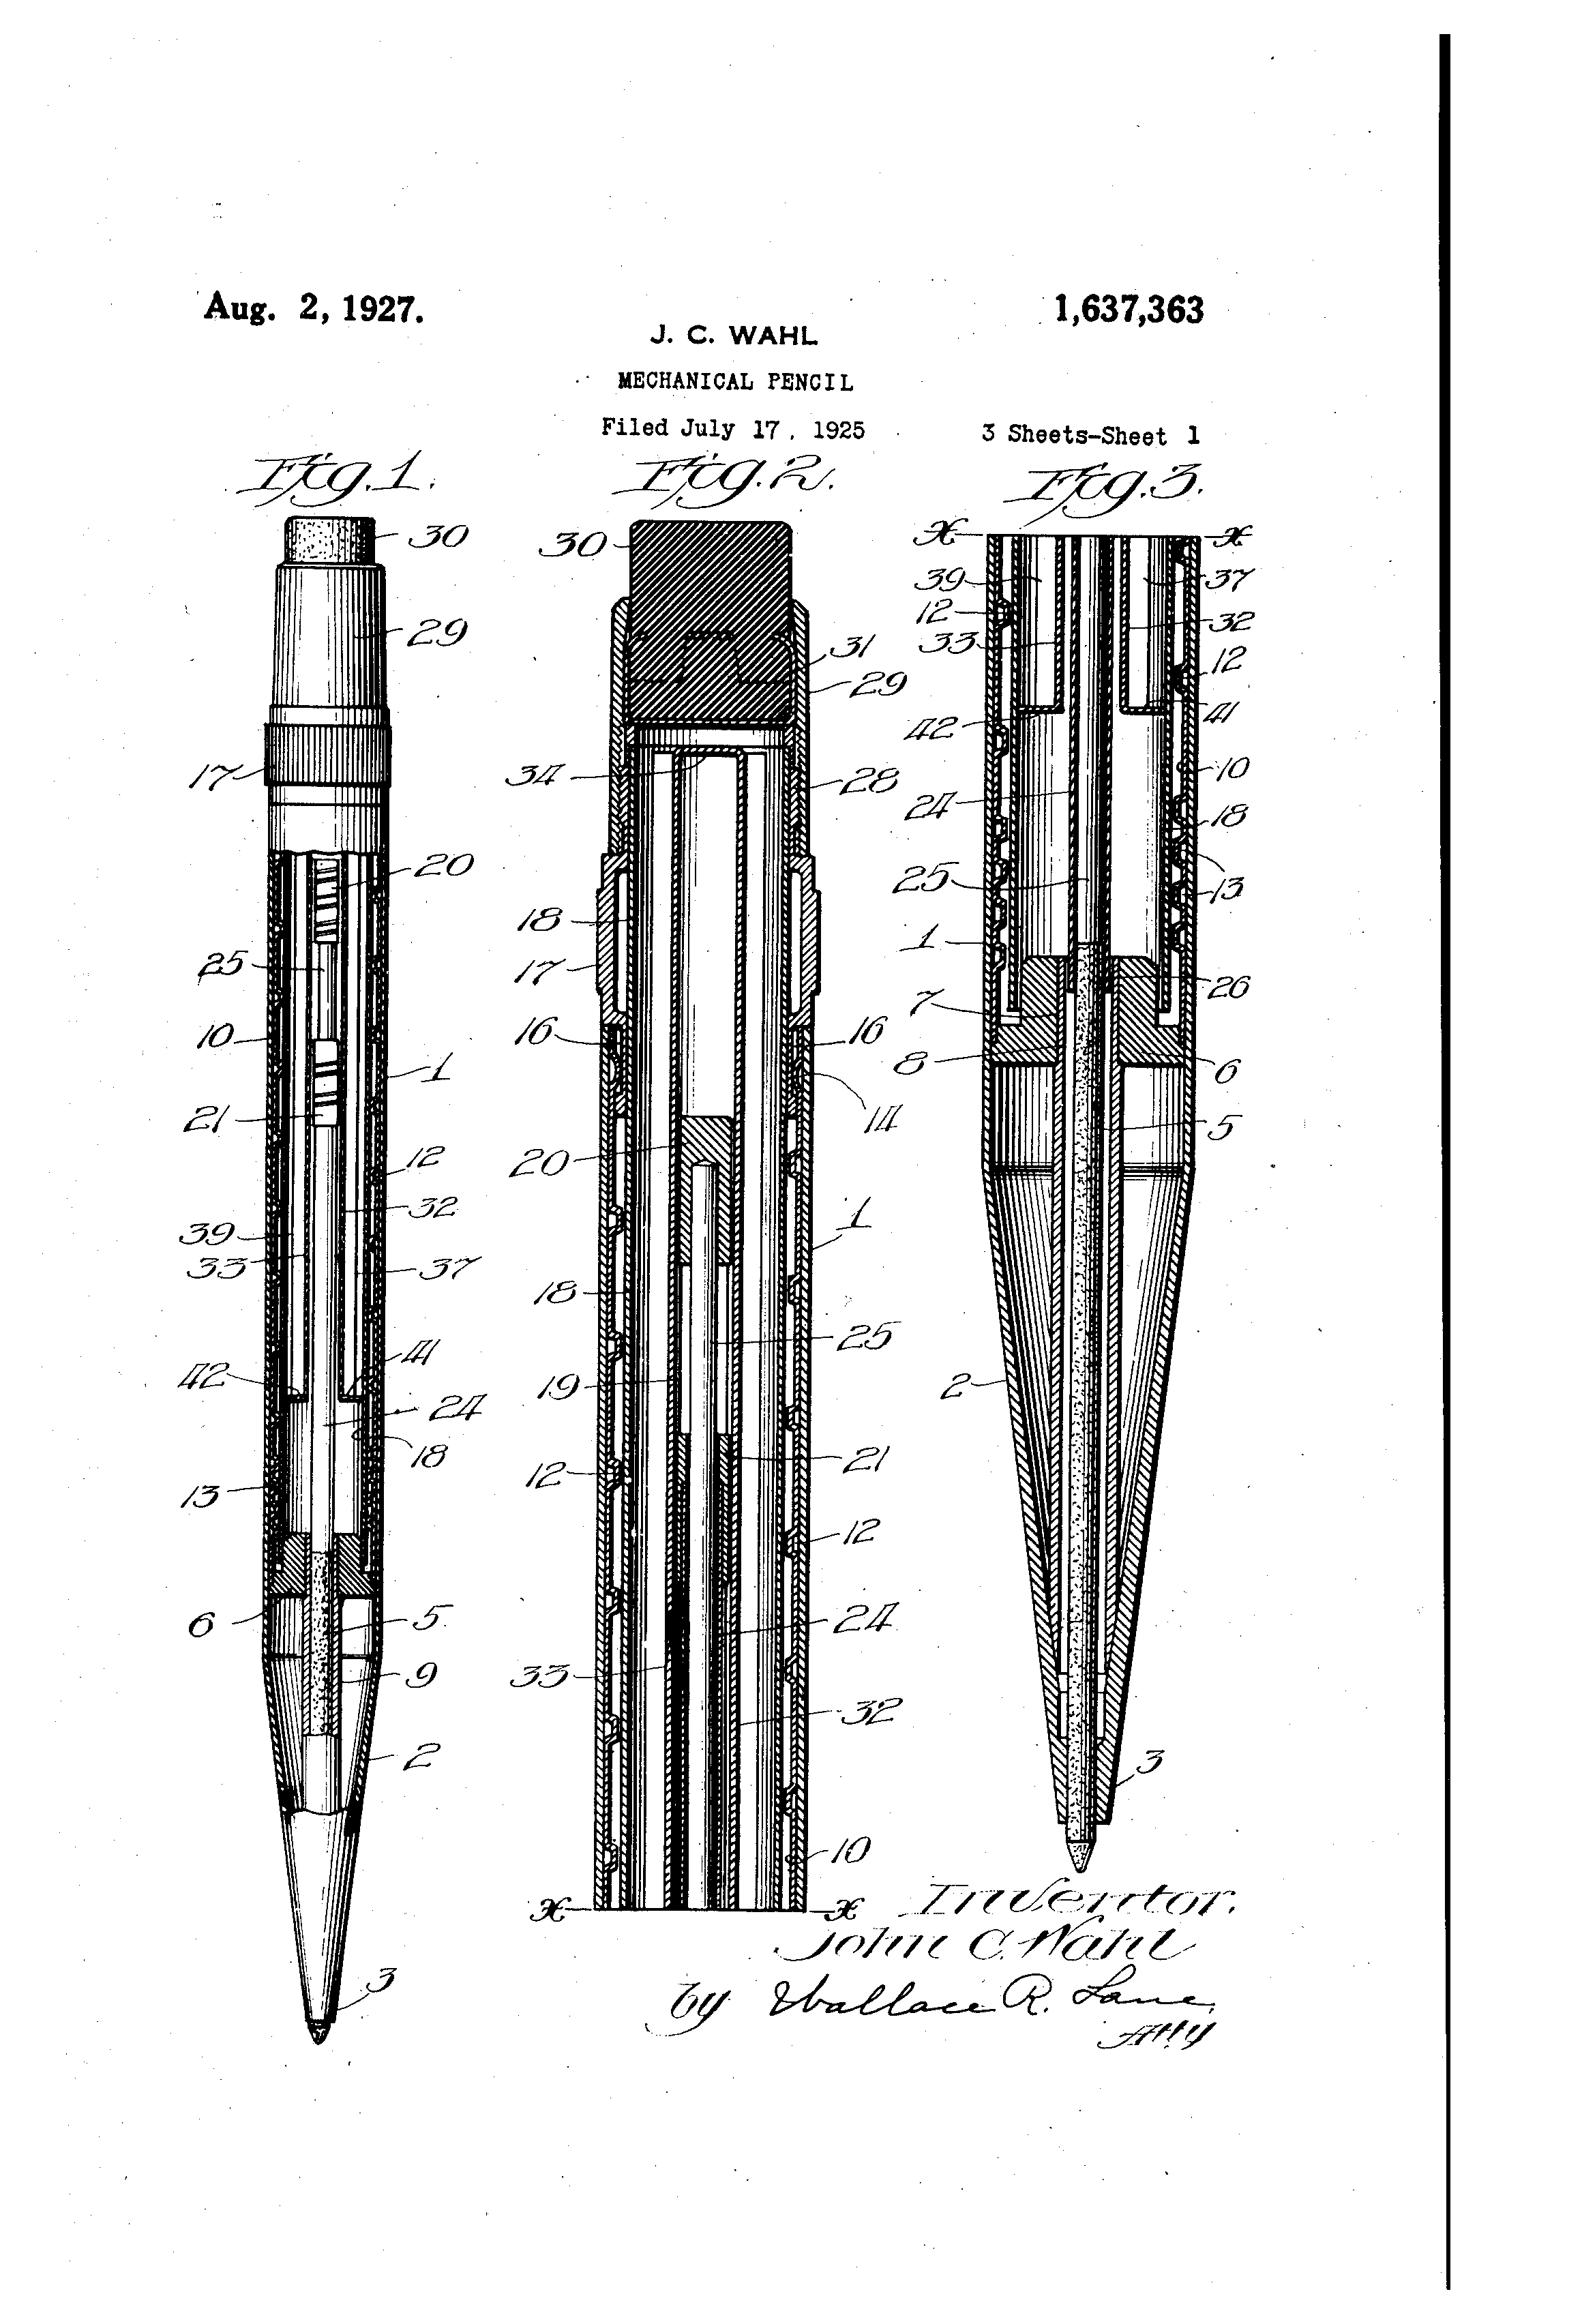 patent us1637363 - mechanical pencil